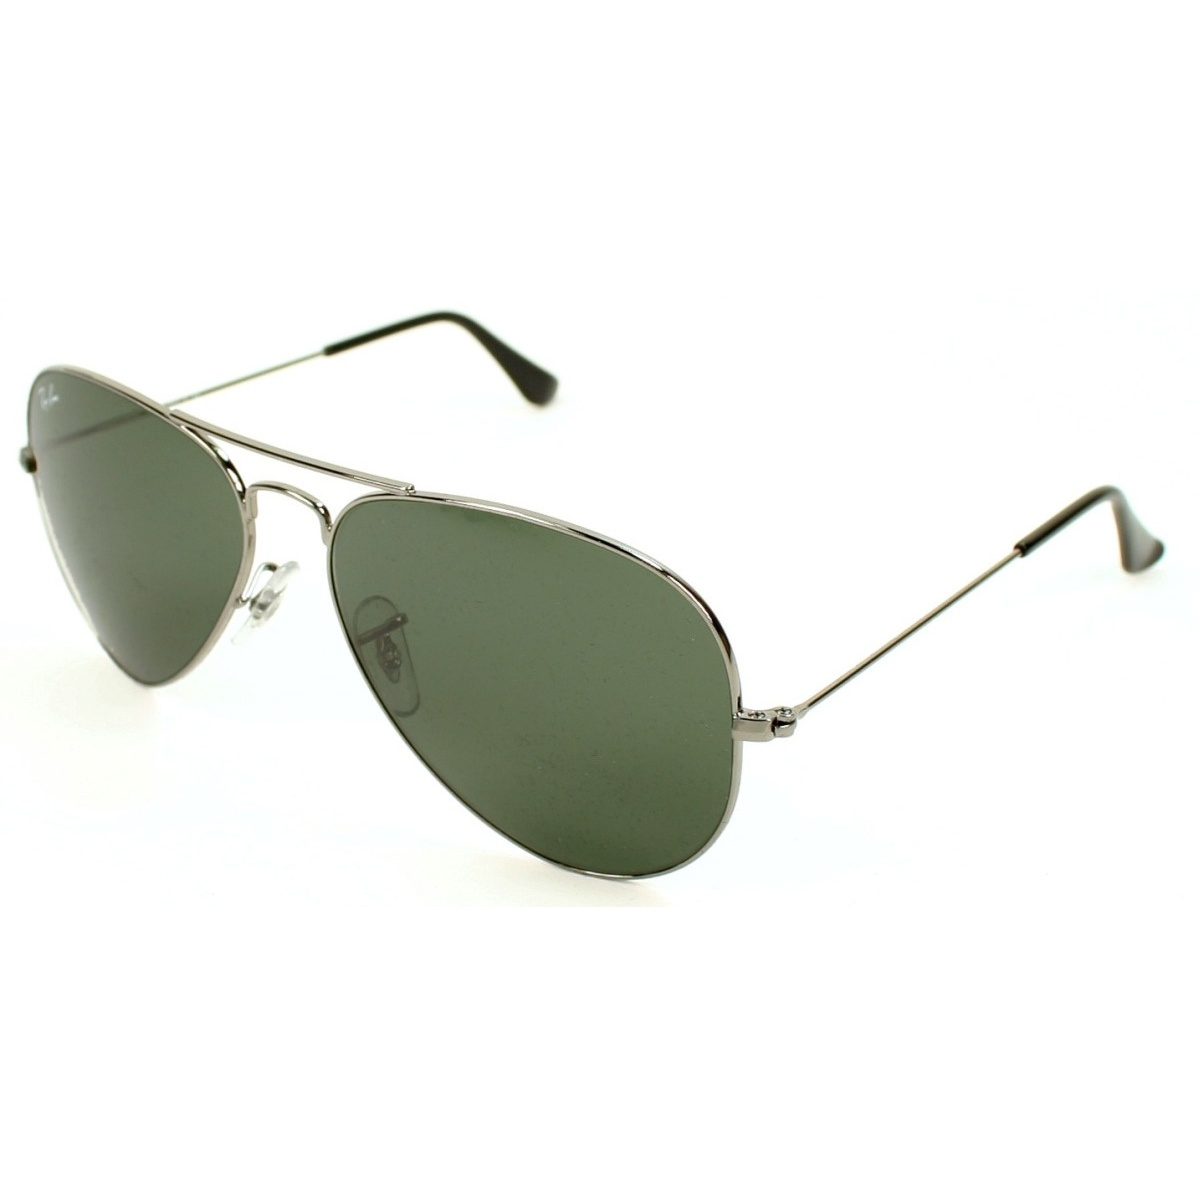 pilot ray ban  Rayban Pilot Sunglasses - The aviator range at Flightstore